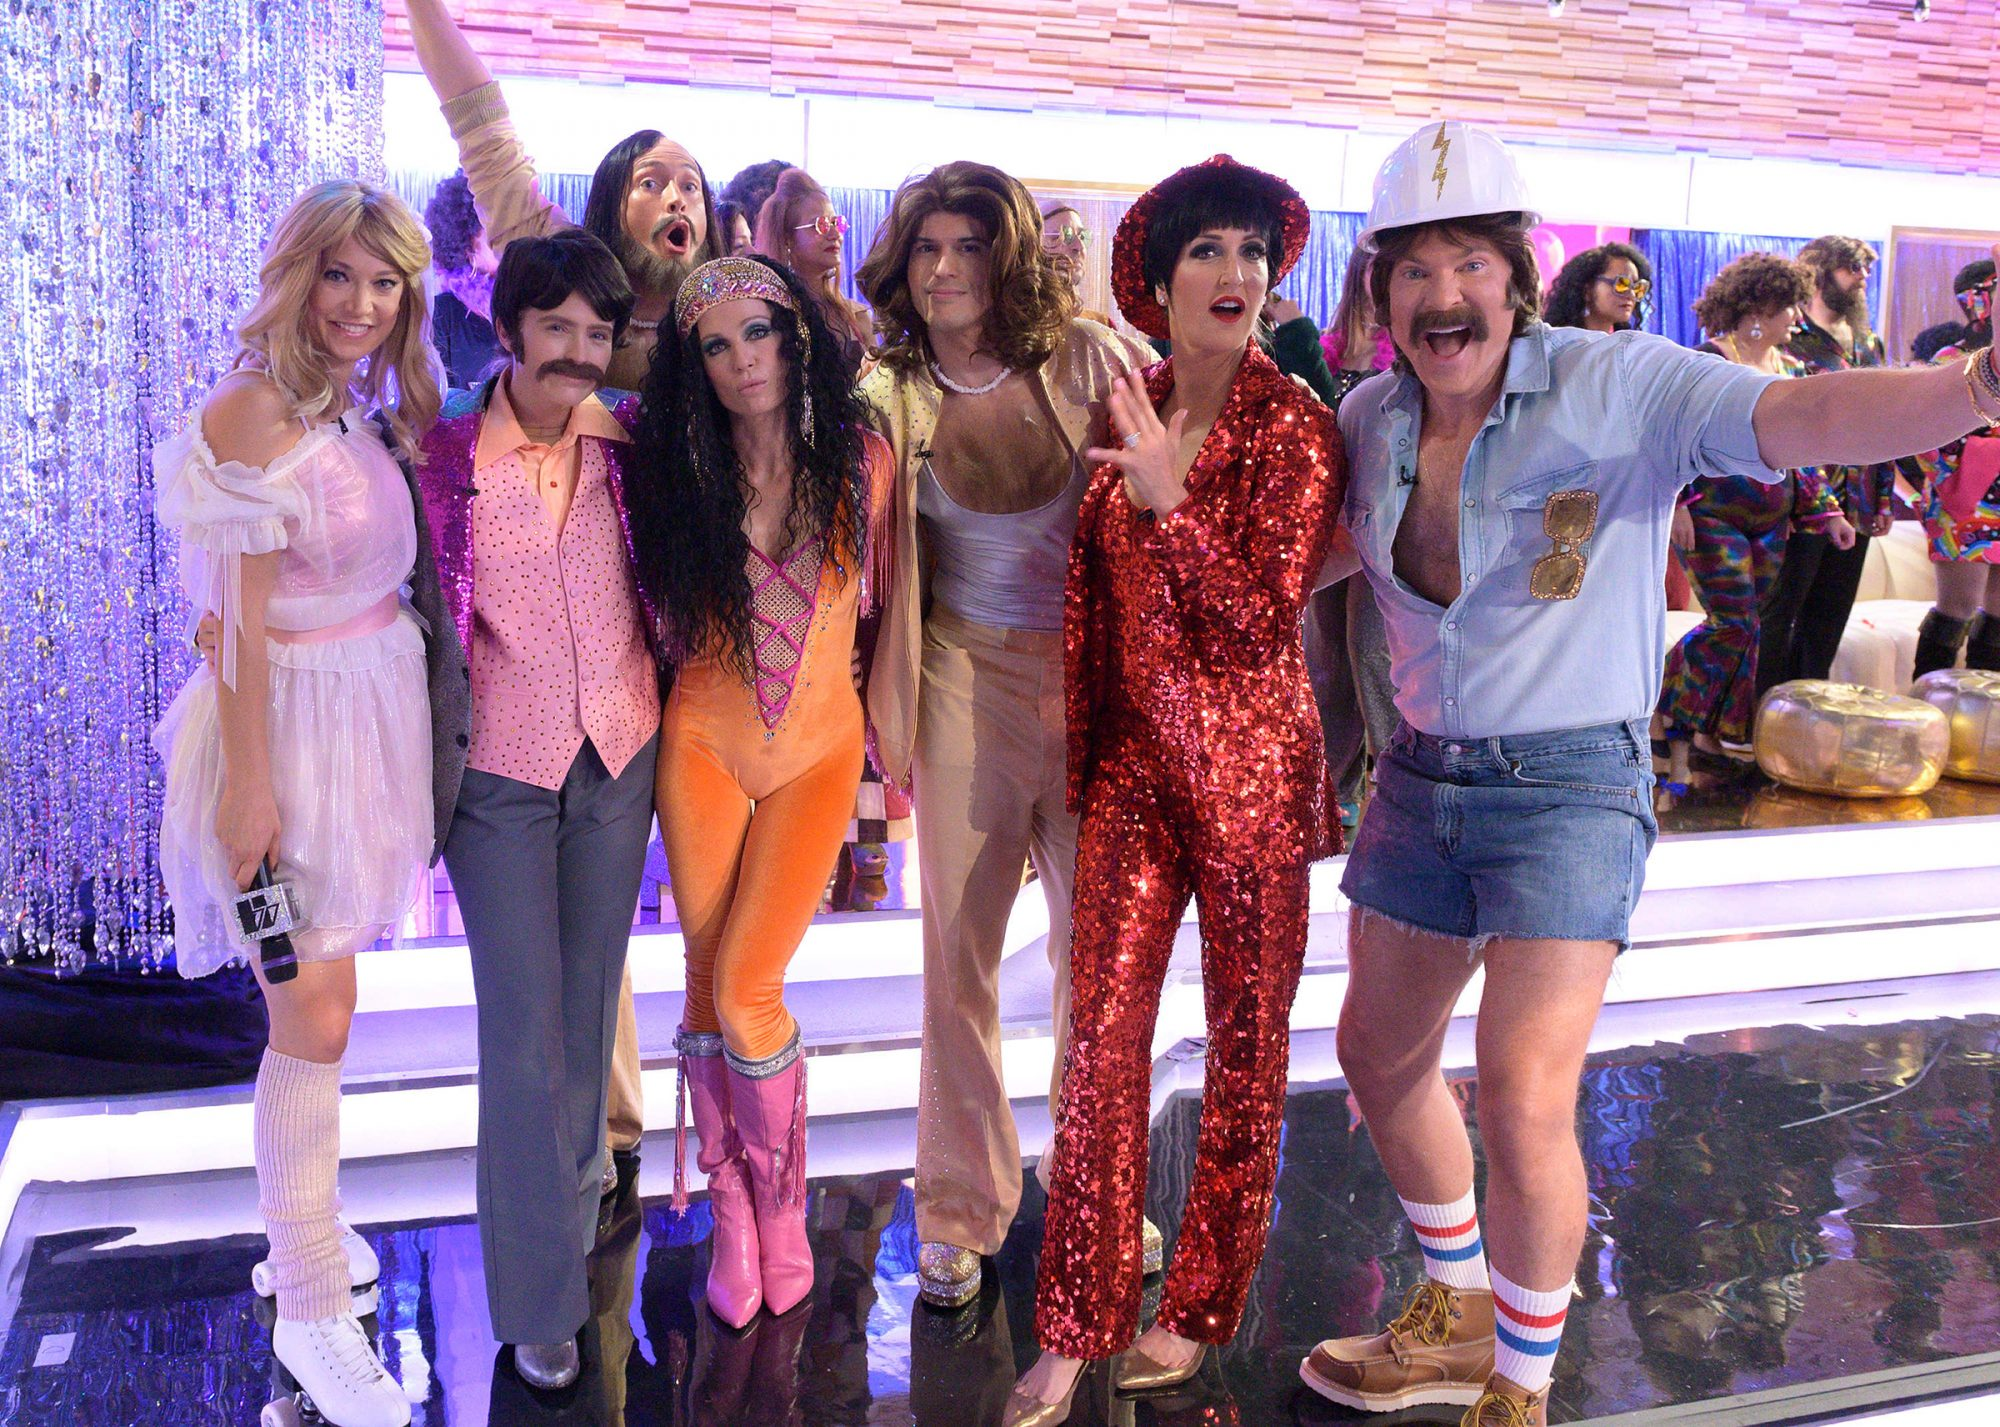 Good Morning America Halloween Robin Roberts (Donna Summer) and Michael Strahan (The Bee Gees) boogied with Lara Spencer (Liza Minnelli), Ginger Zee (Olivia Newton-John) Amy Robach (Cher), Sara Haines (Sonny), Sam Champion (The Village People), Whit Johnson and Gio Benitez (The Bee Gees)